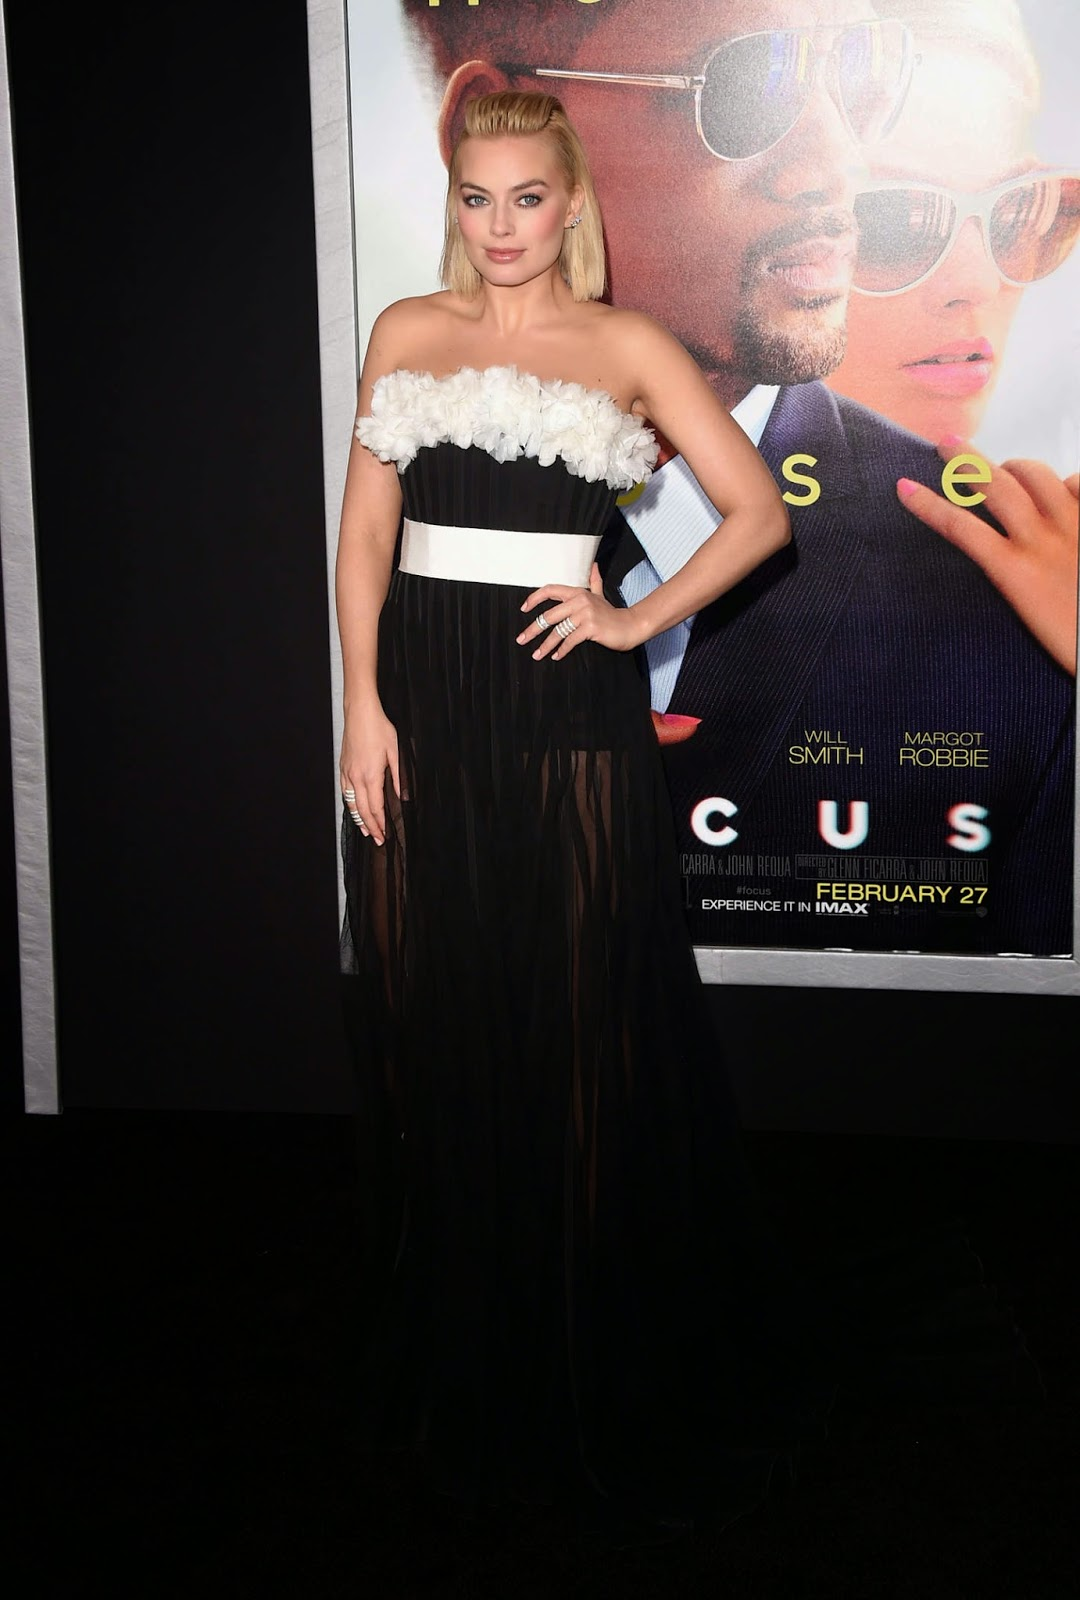 Margot Robbie wears a strapless dress to the 'Focus' premiere in LA